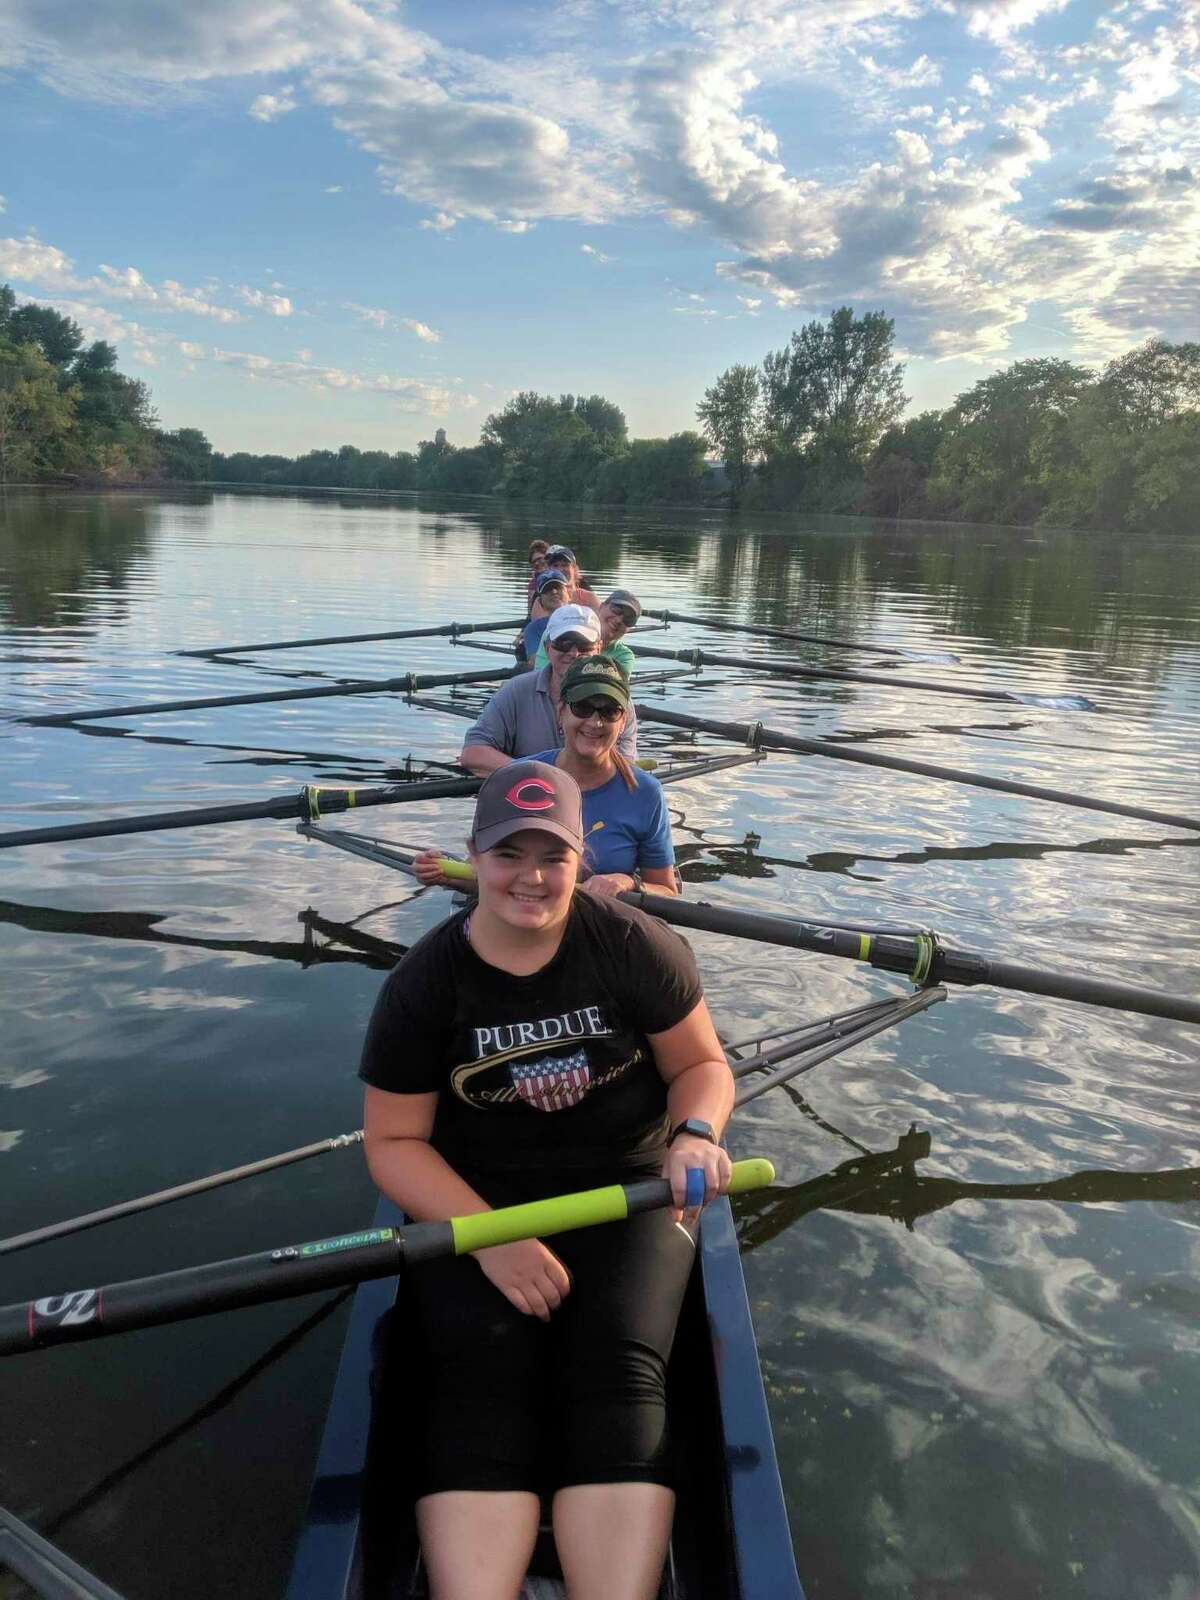 The Bay City Rowing Club is offering a Learn to Row Class for adults in August. (Photo provided)